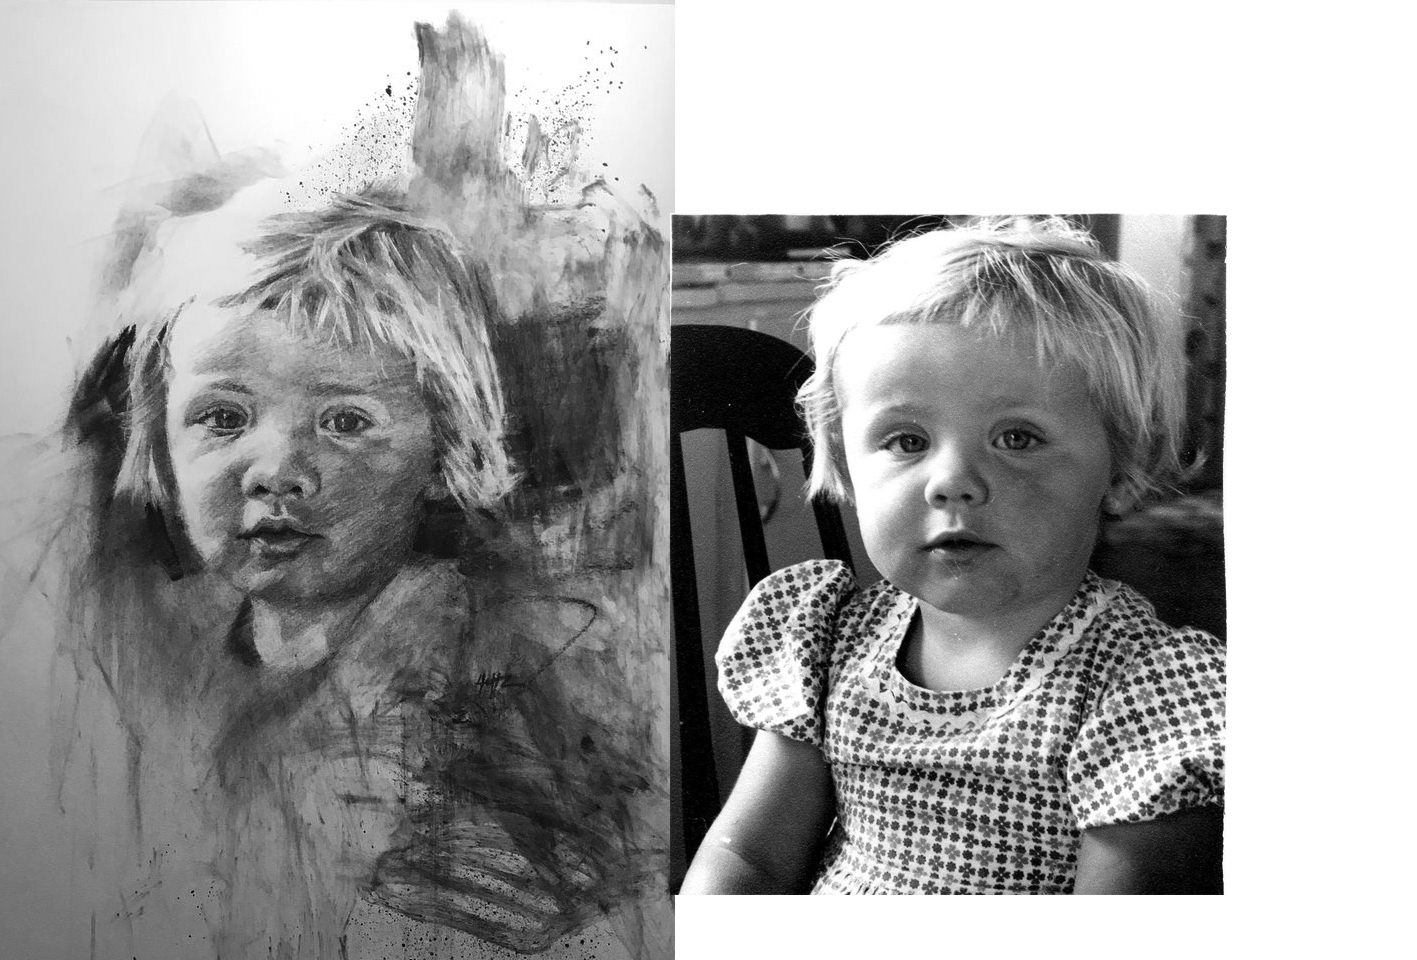 Comparison of photo and drawing